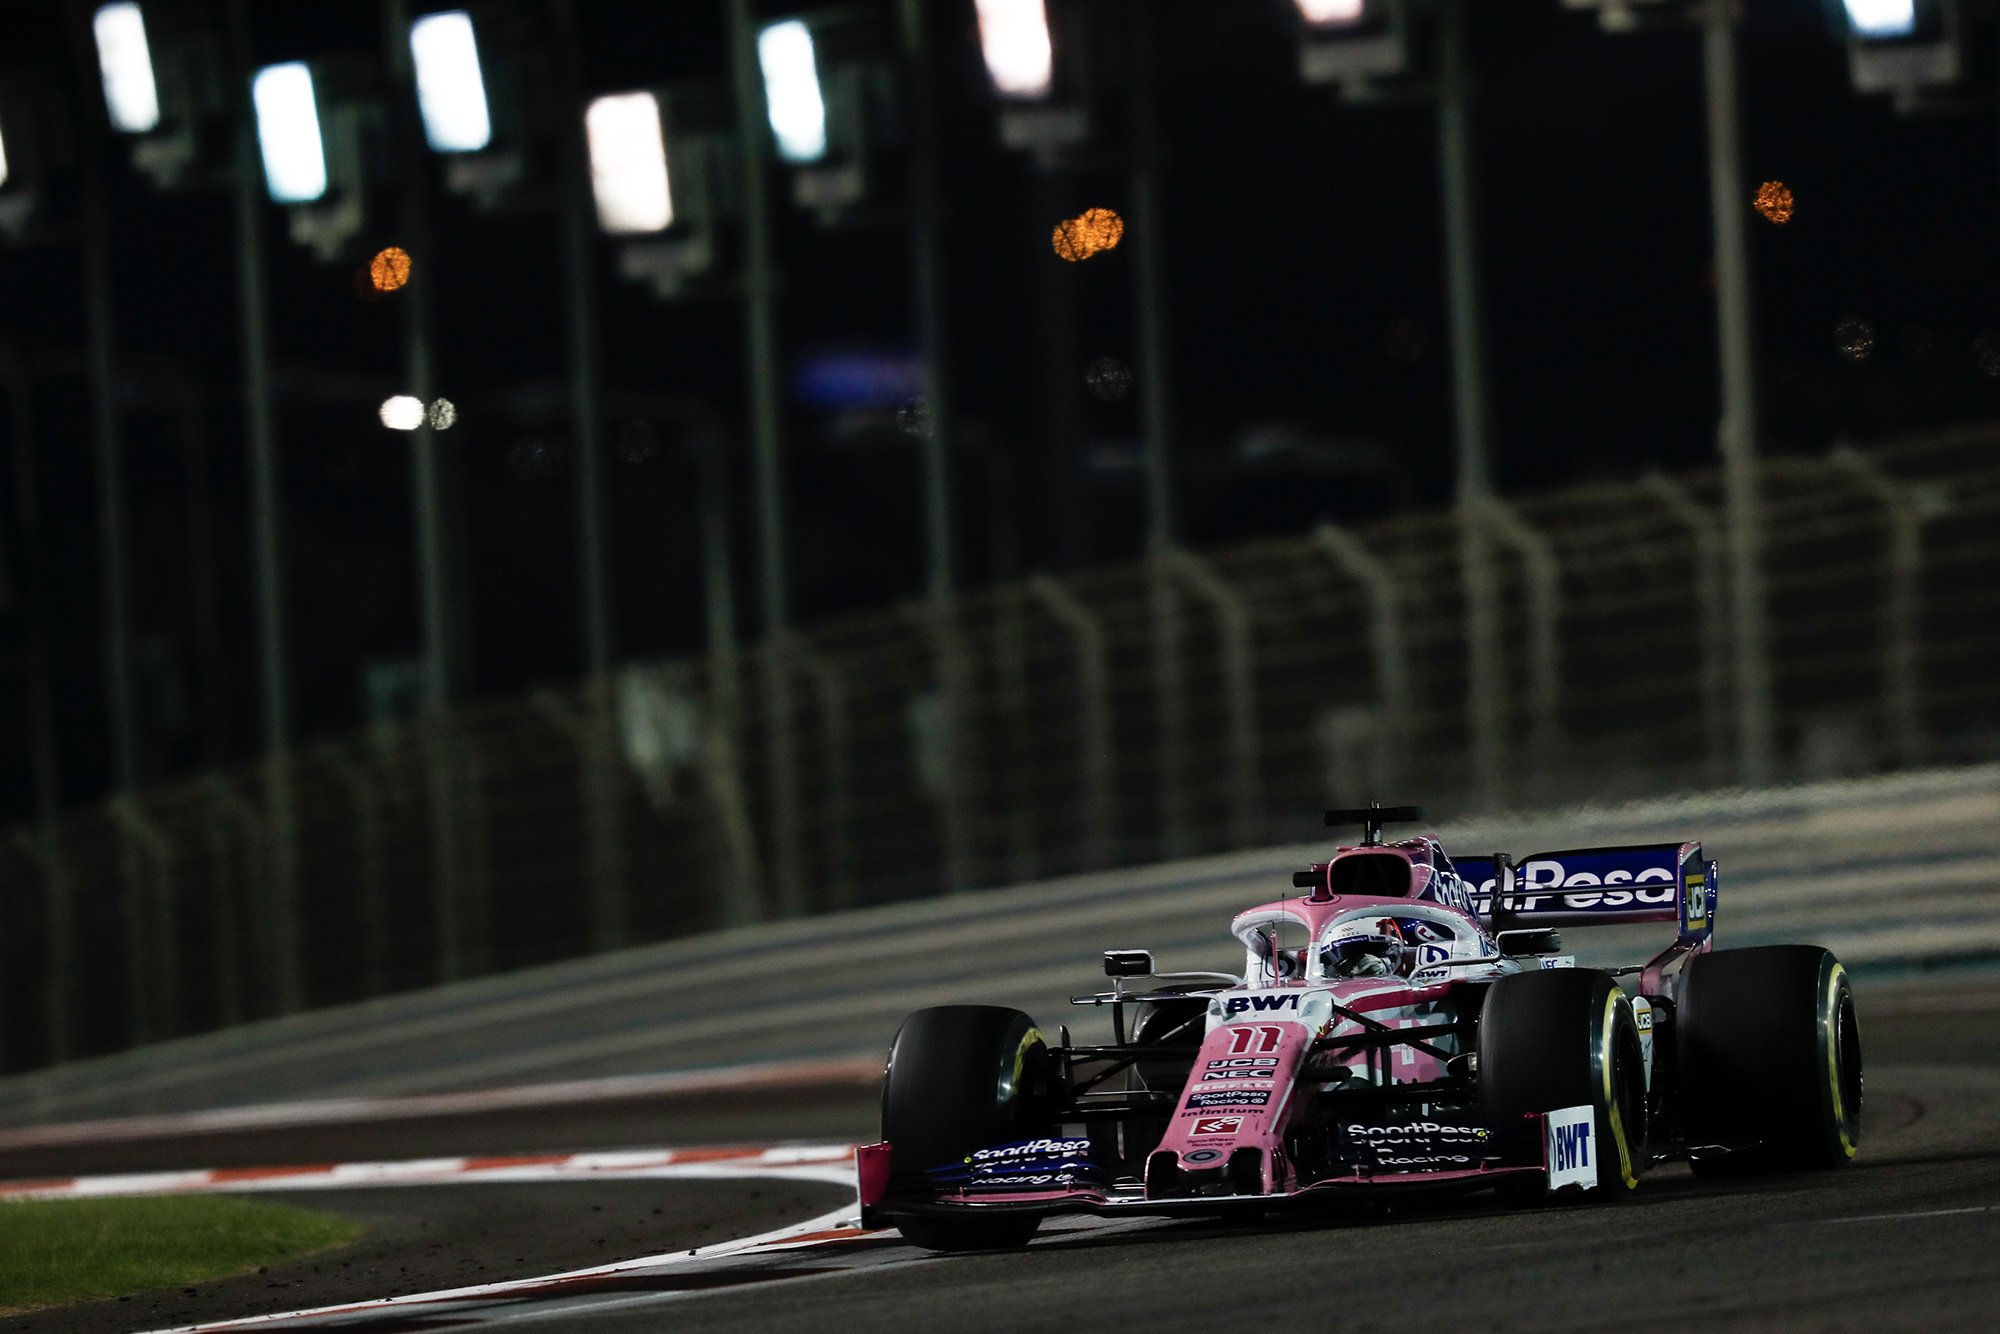 Sergio Perez's Racing Point